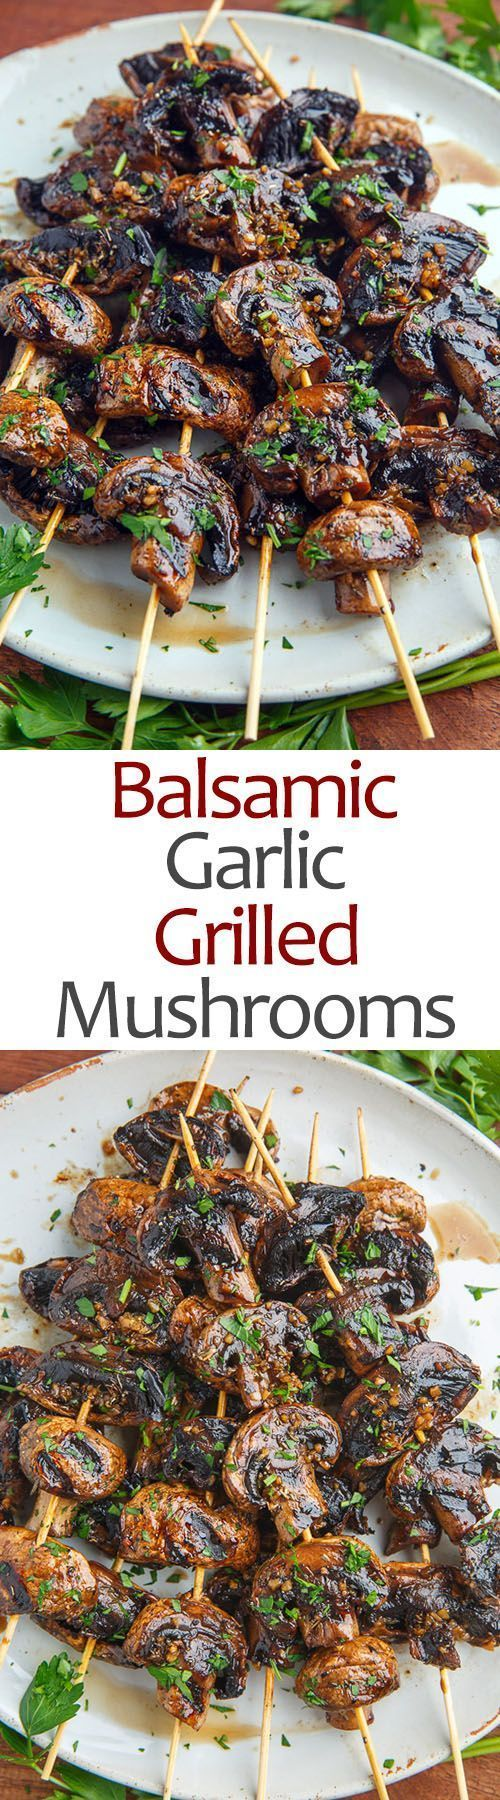 Balsamic Garlic Grilled Mushroom Skewers http://grillidea.com/best-portable-outdoor-grills/